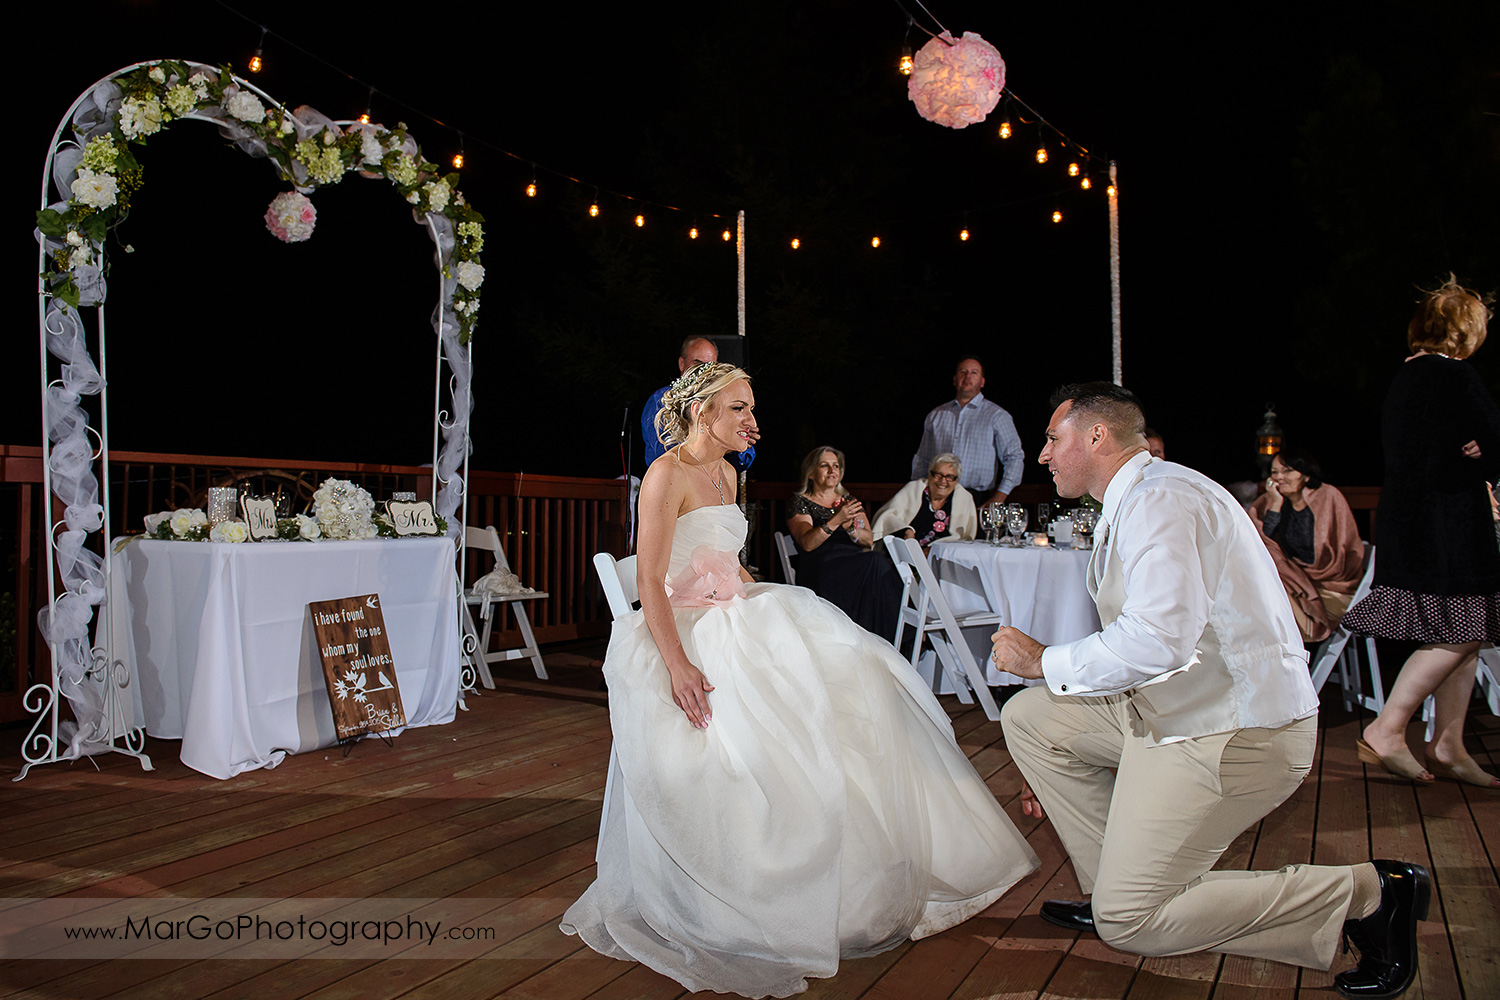 groom kneeling in front of bride sitting on the chair during backyard wedding reception